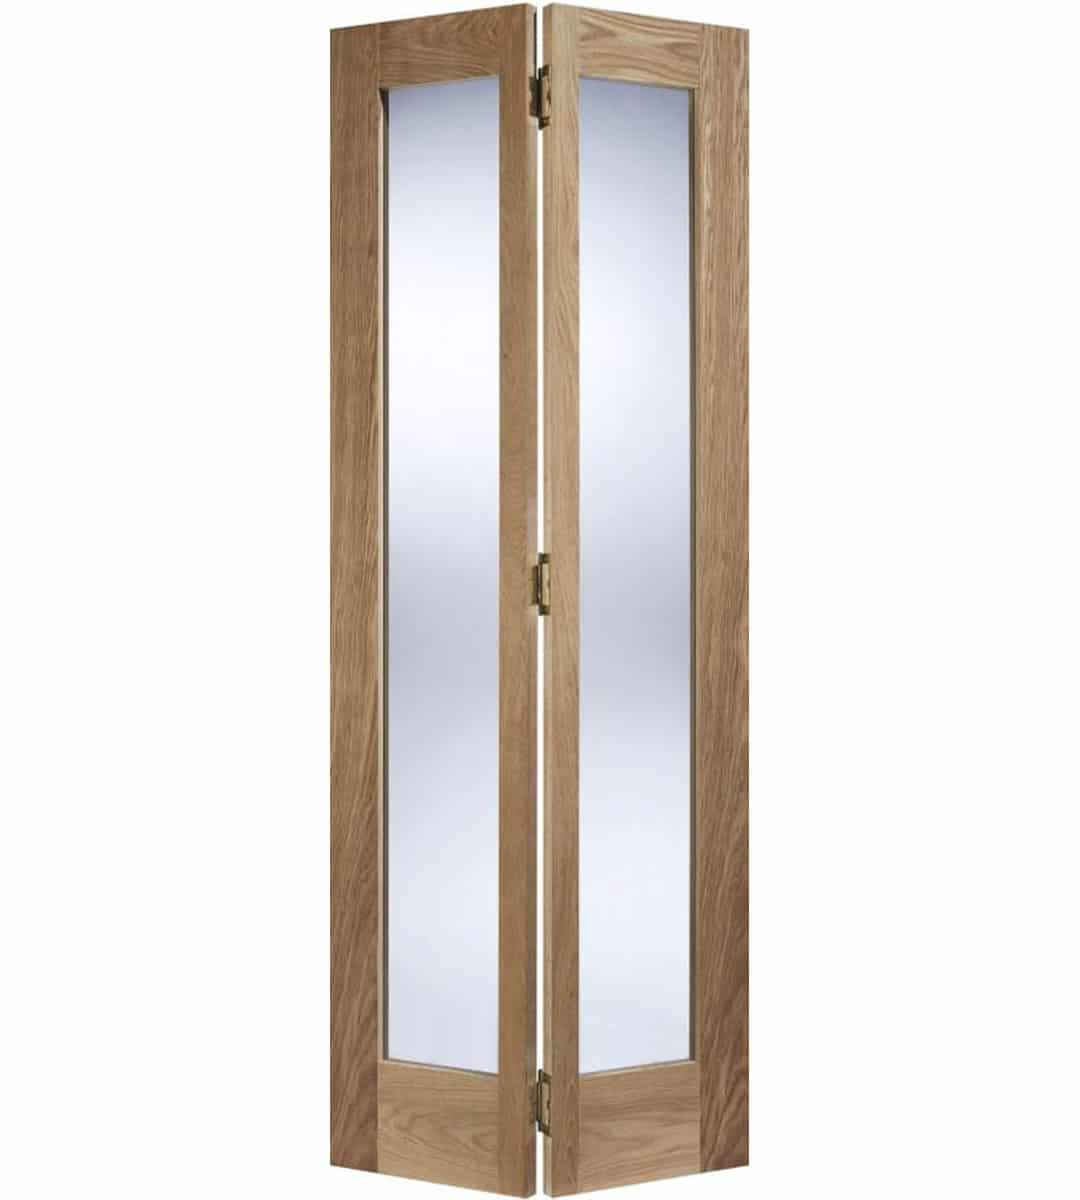 oak pattern 10 glazed bifolding door